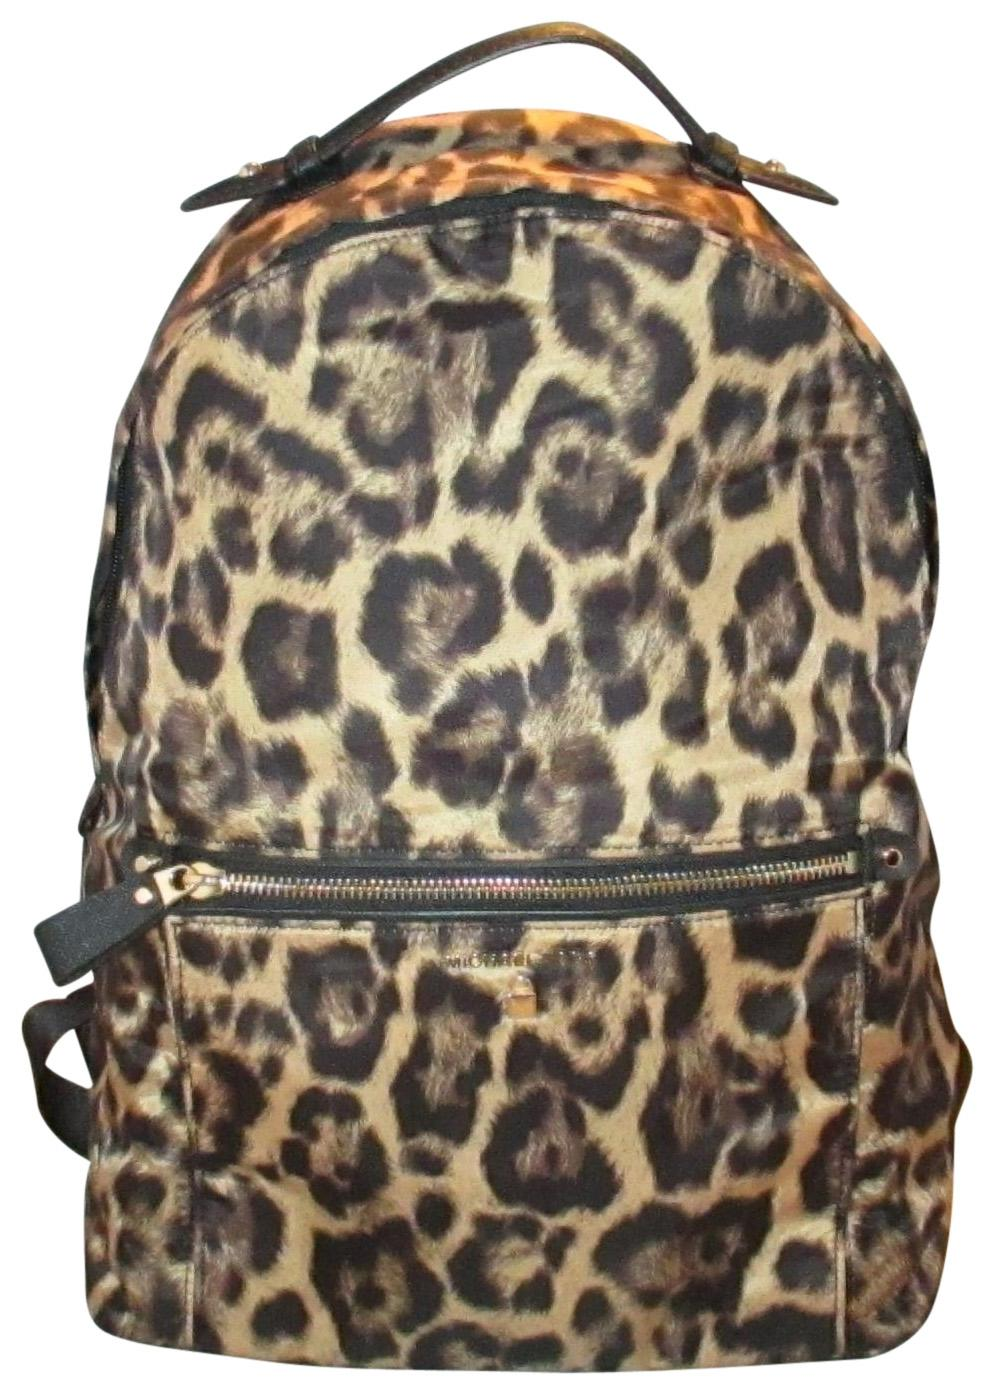 93b8e37037a0 spain michael kors leopard backpack 00d0d b26f8